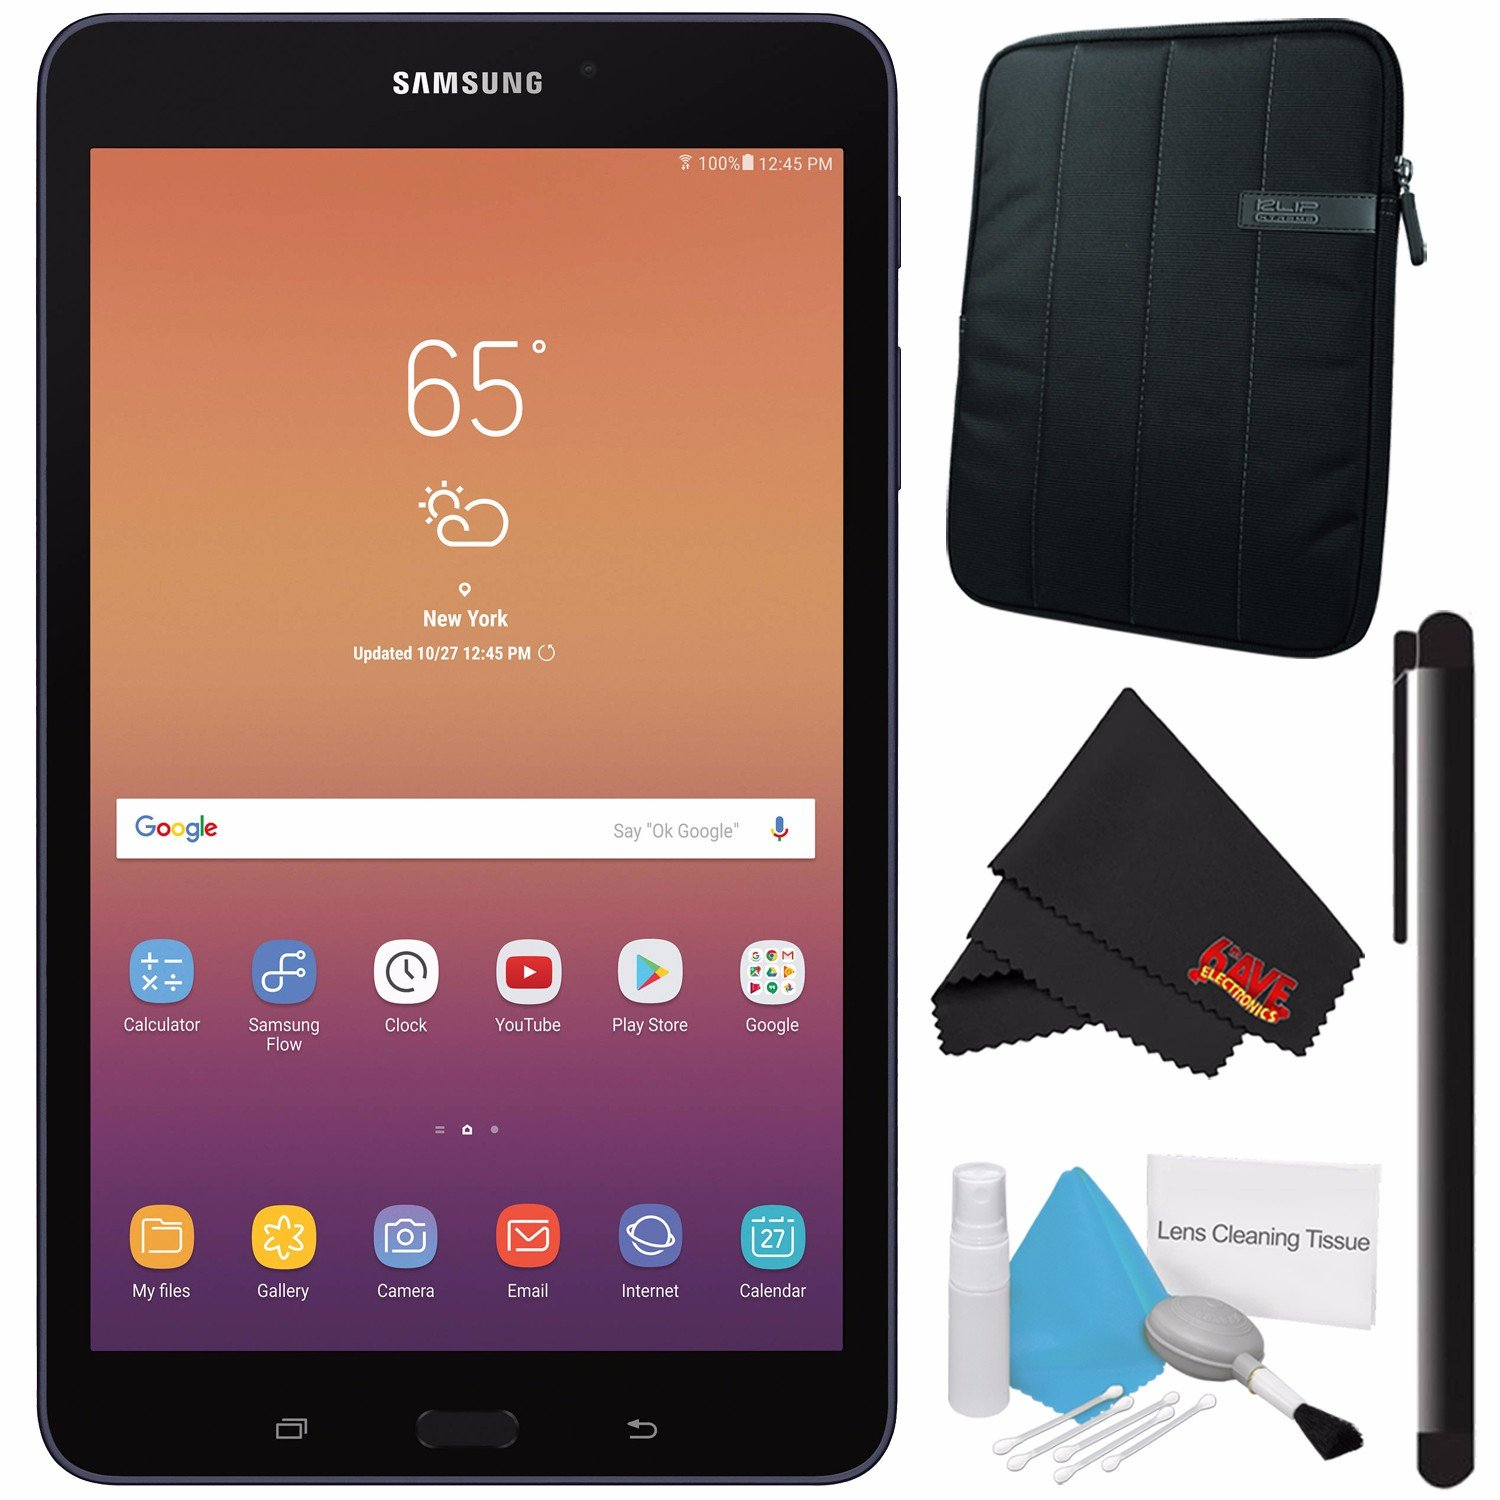 Samsung 8.0'' Galaxy Tab A 8.0 32GB Tablet (Wi-Fi Only, Black) SM-T380NZKEXAR + Deluxe Cleaning Kit + MicroFiber Cloth + Universal Stylus for Tablets + Tablet Neoprene Sleeve 10.1'' Case (Black) Bundle by Samsung